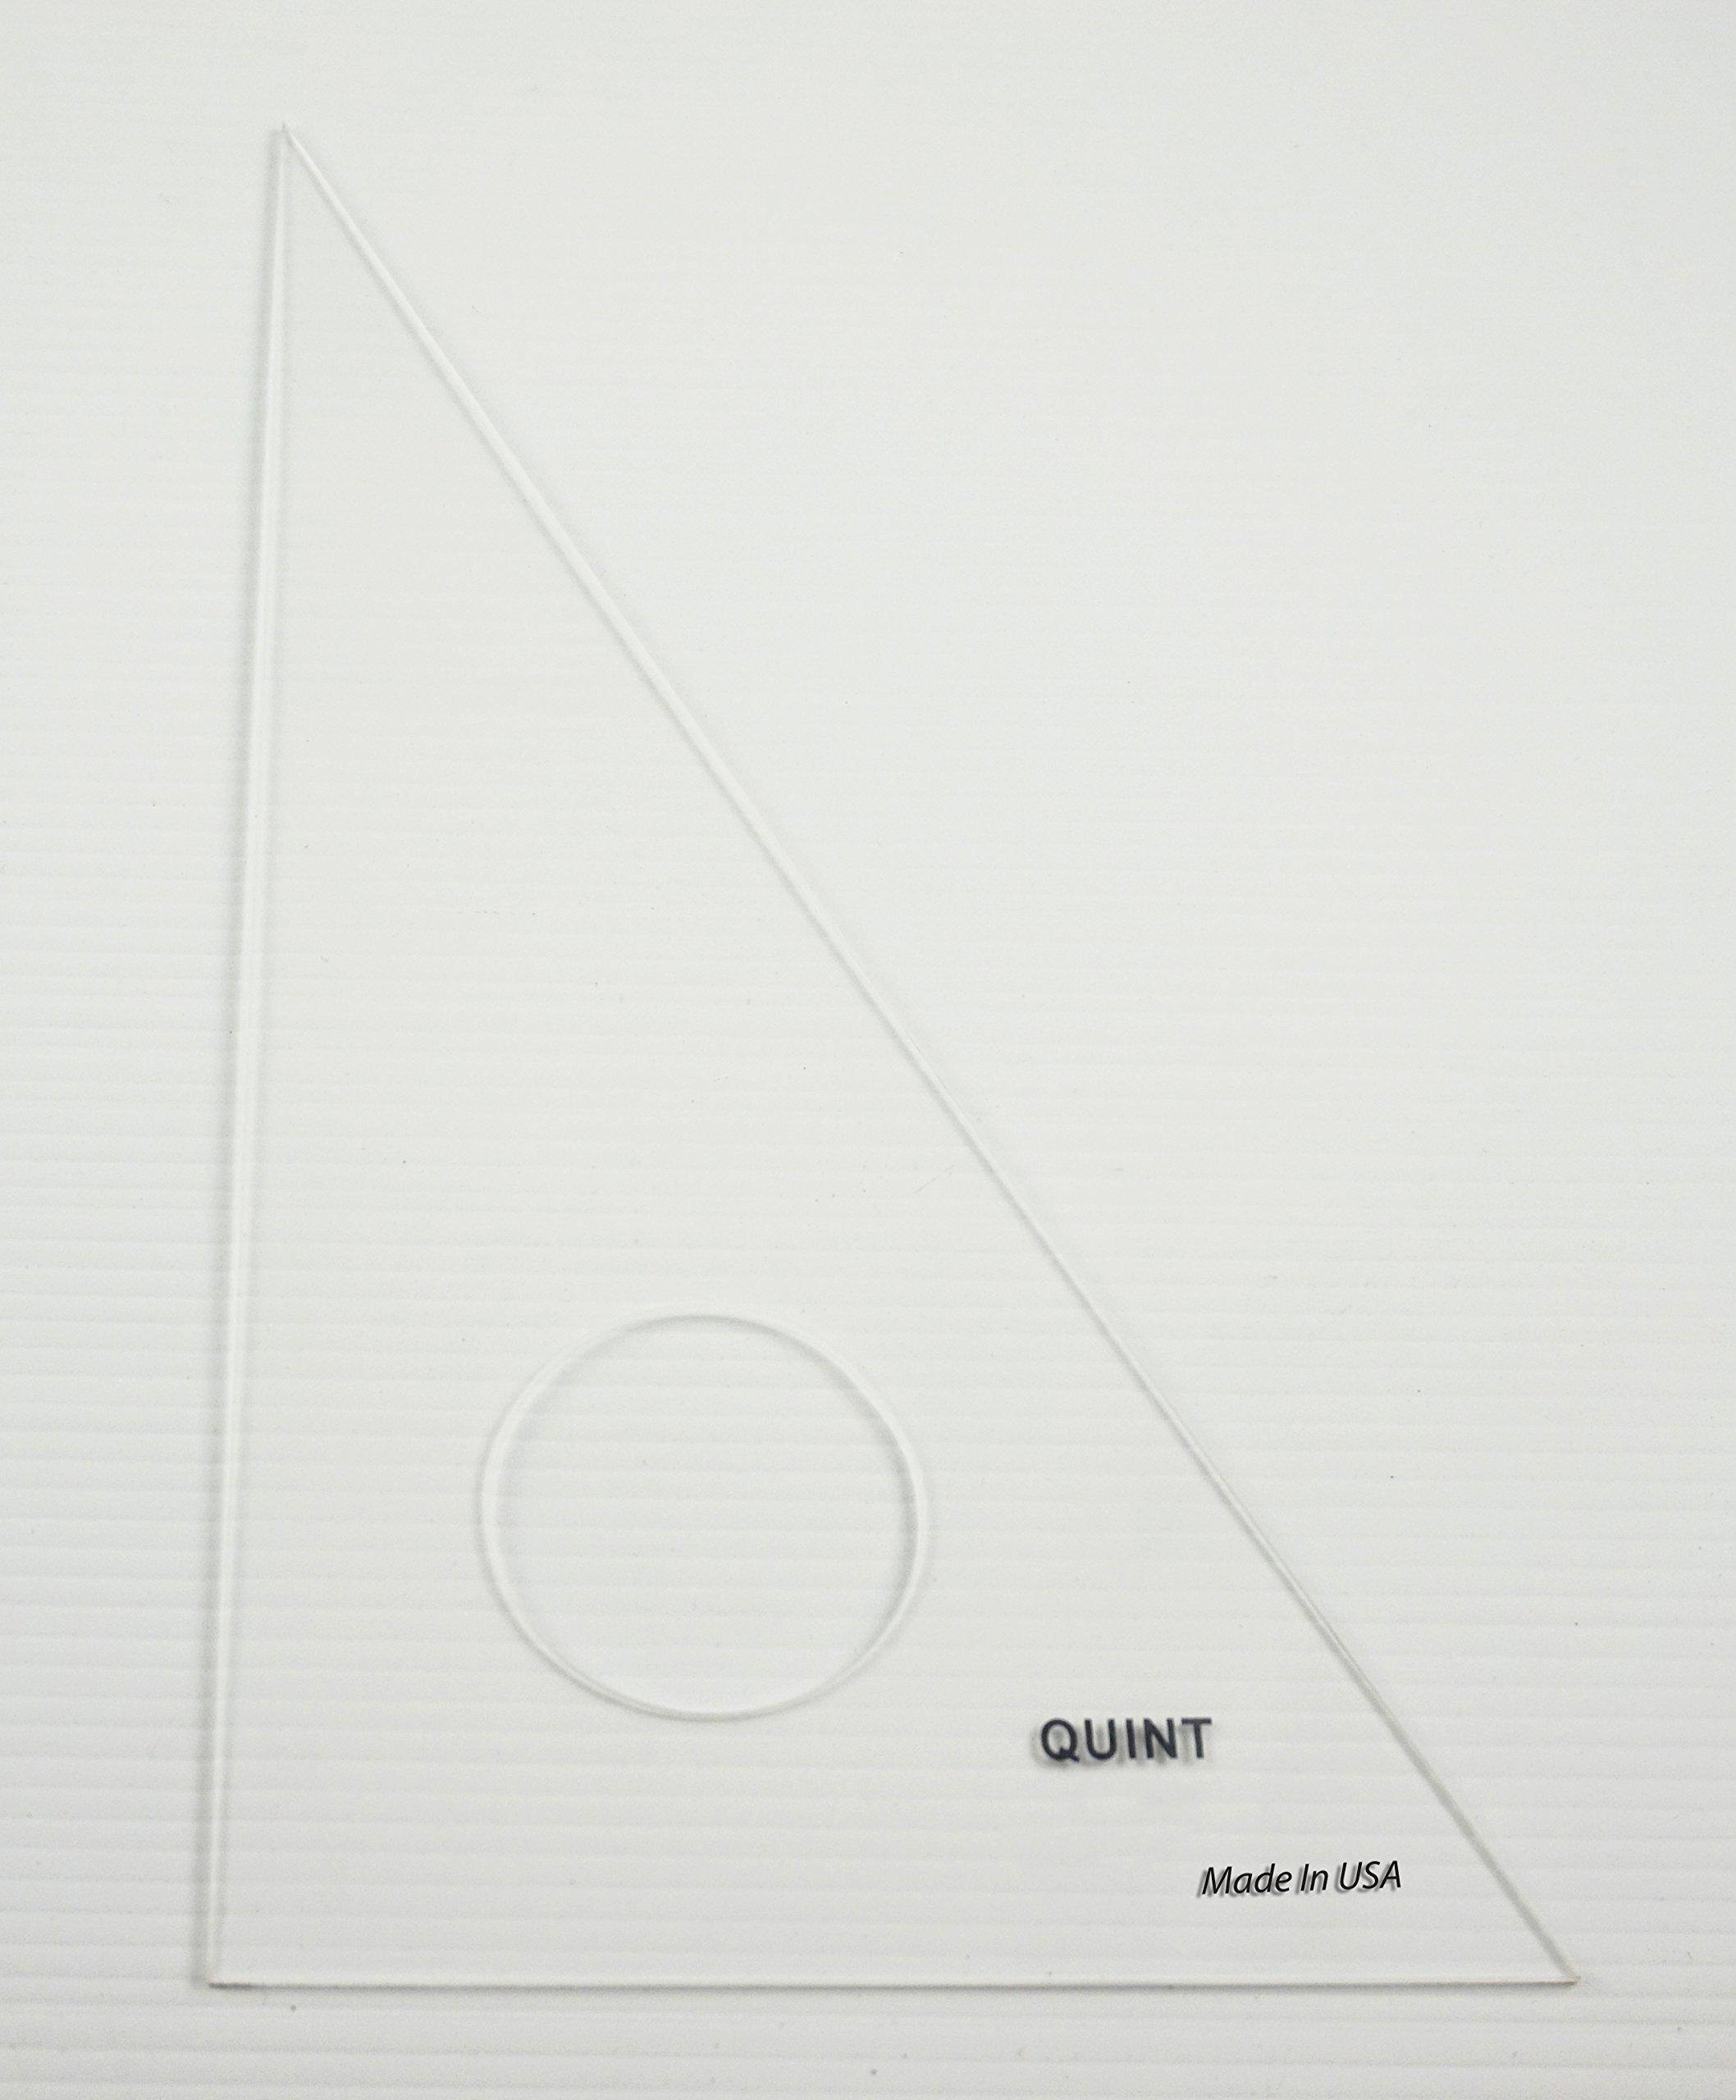 QUINT Premium Unbreakable Clear Academic Triangle 30/60 - 6'' 30 Piece Classroom Pack